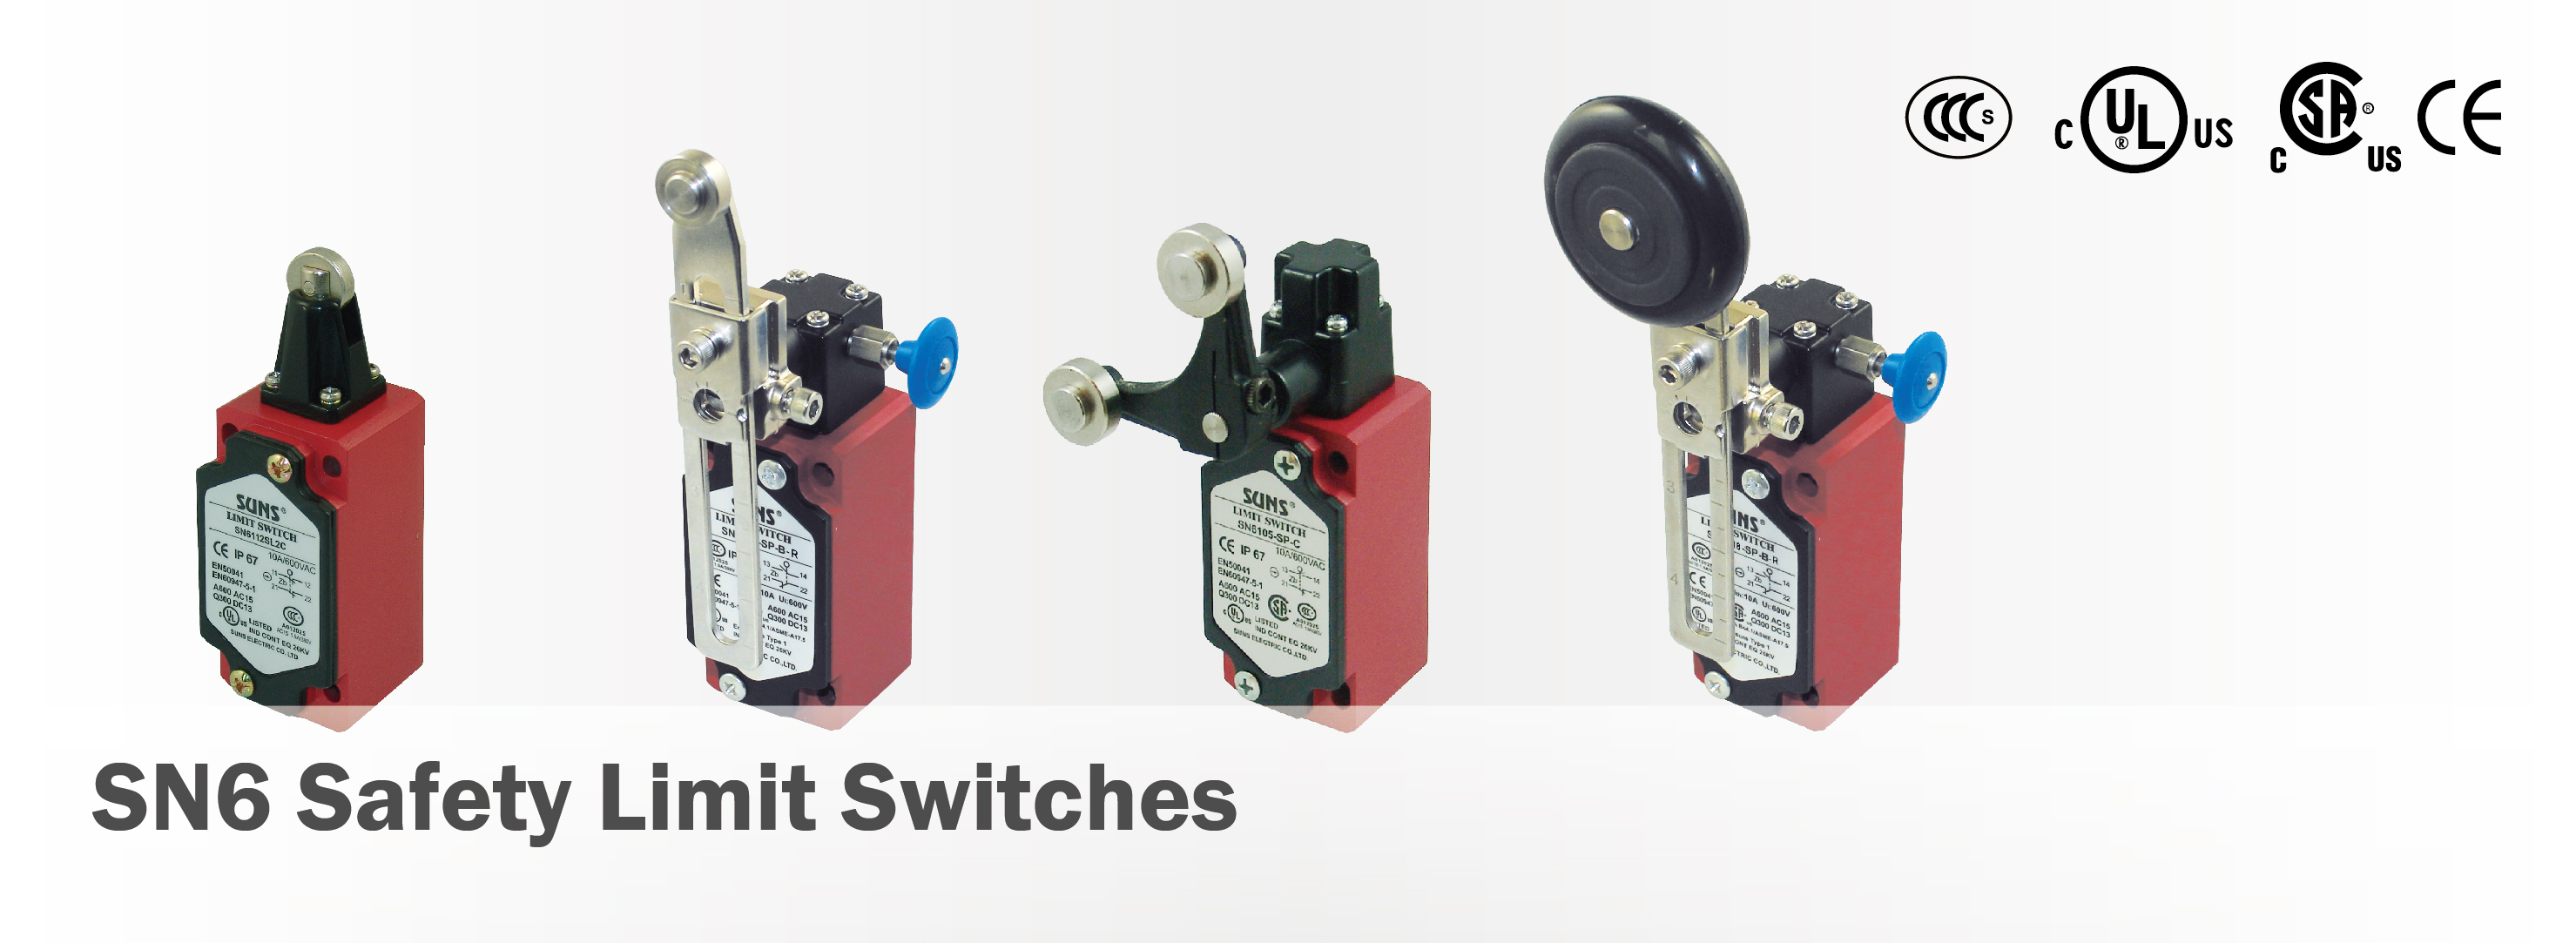 SN6 Safety Limit Switches